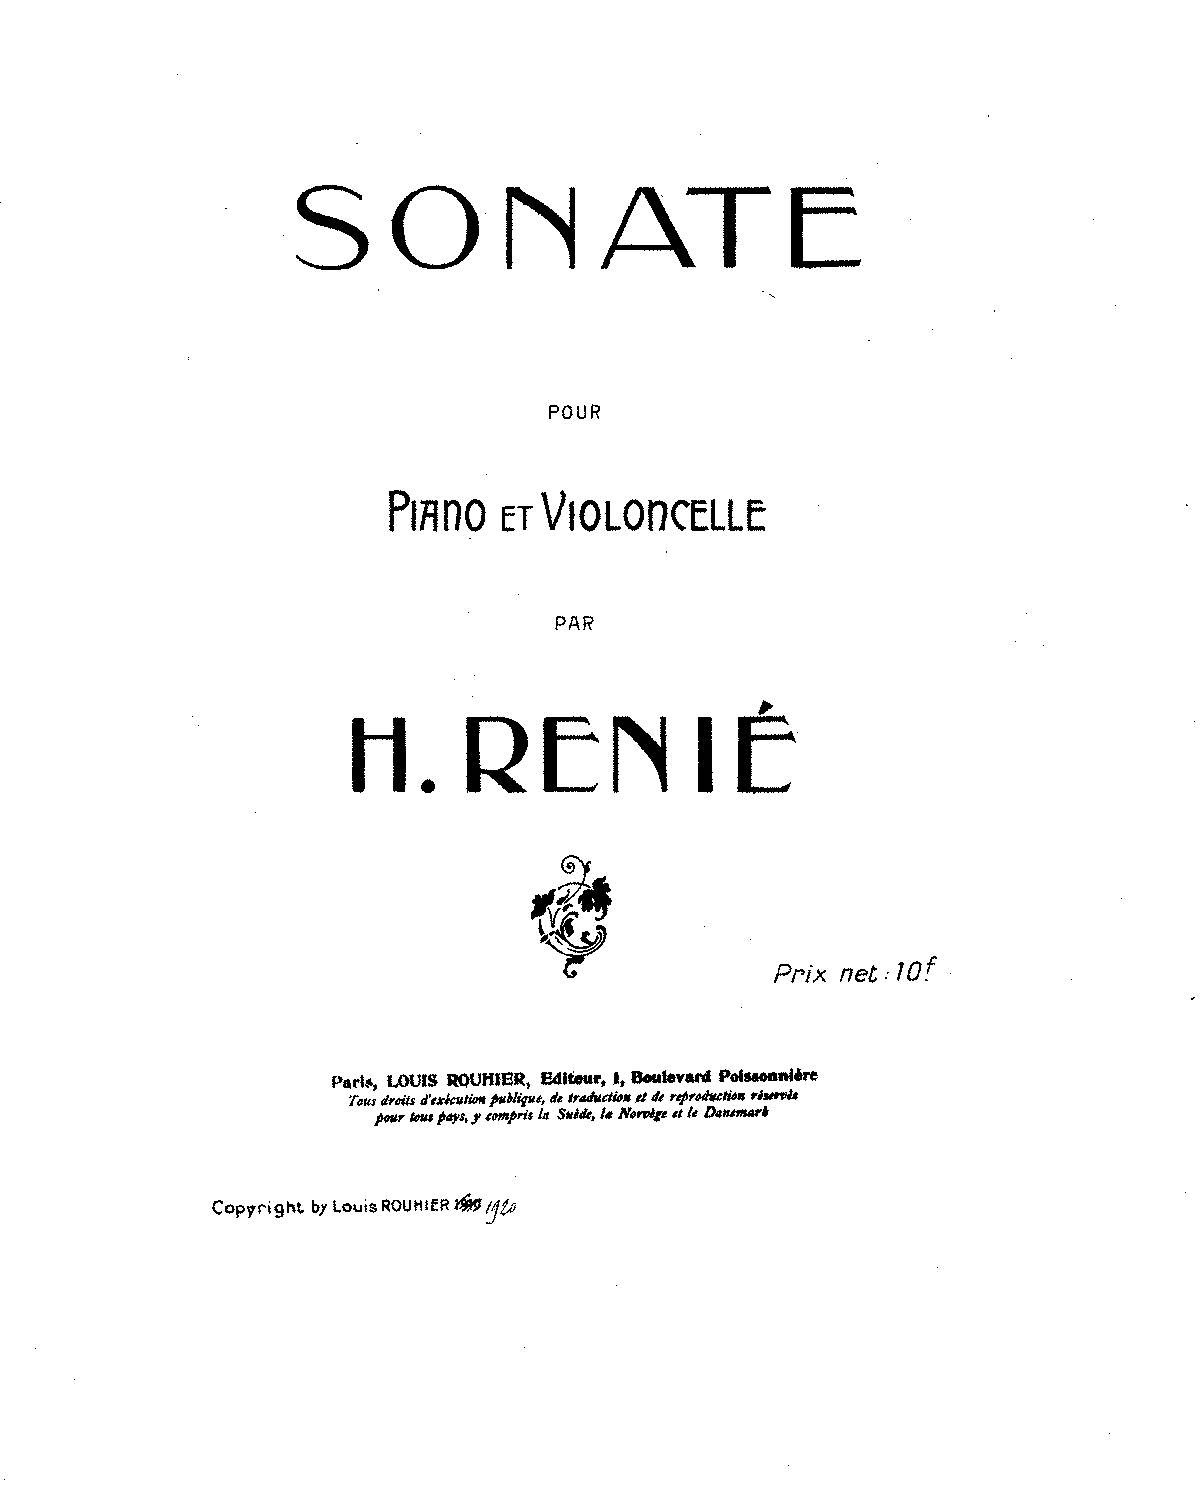 PMLP315984-Renie - Sonata (1919) for Cello and Piano pno.pdf